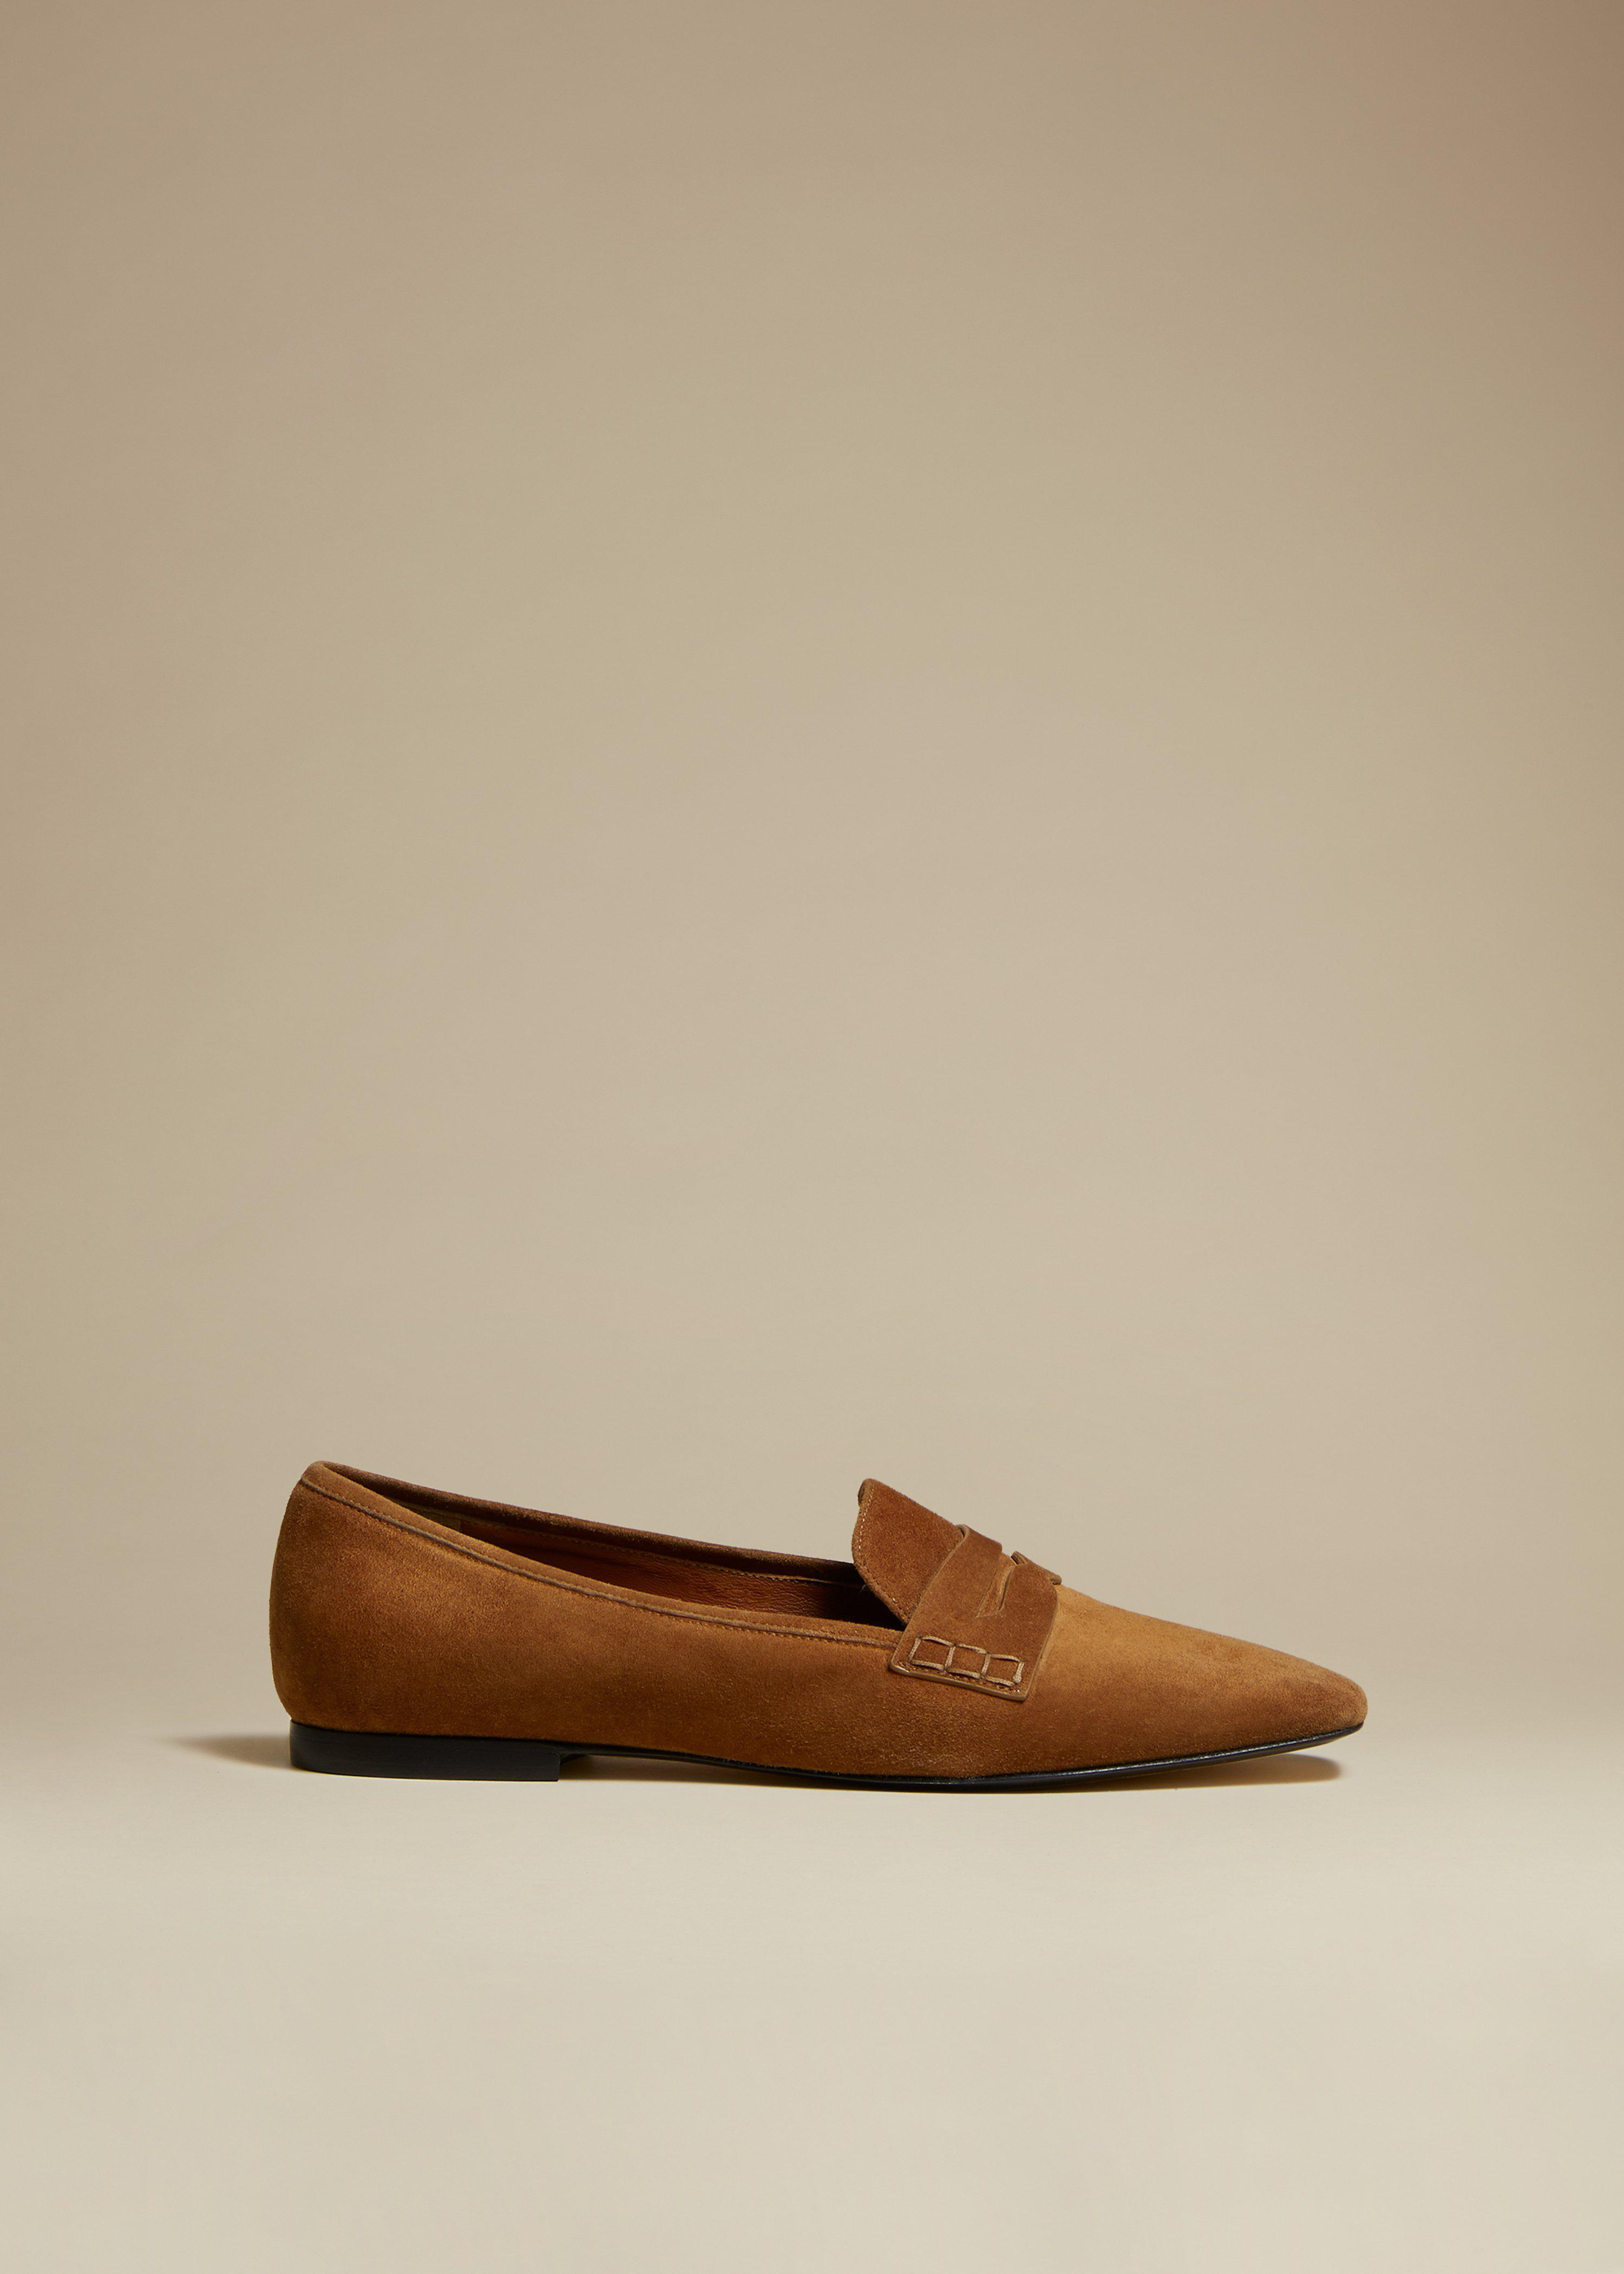 The Carlisle Loafer in Caramel Suede